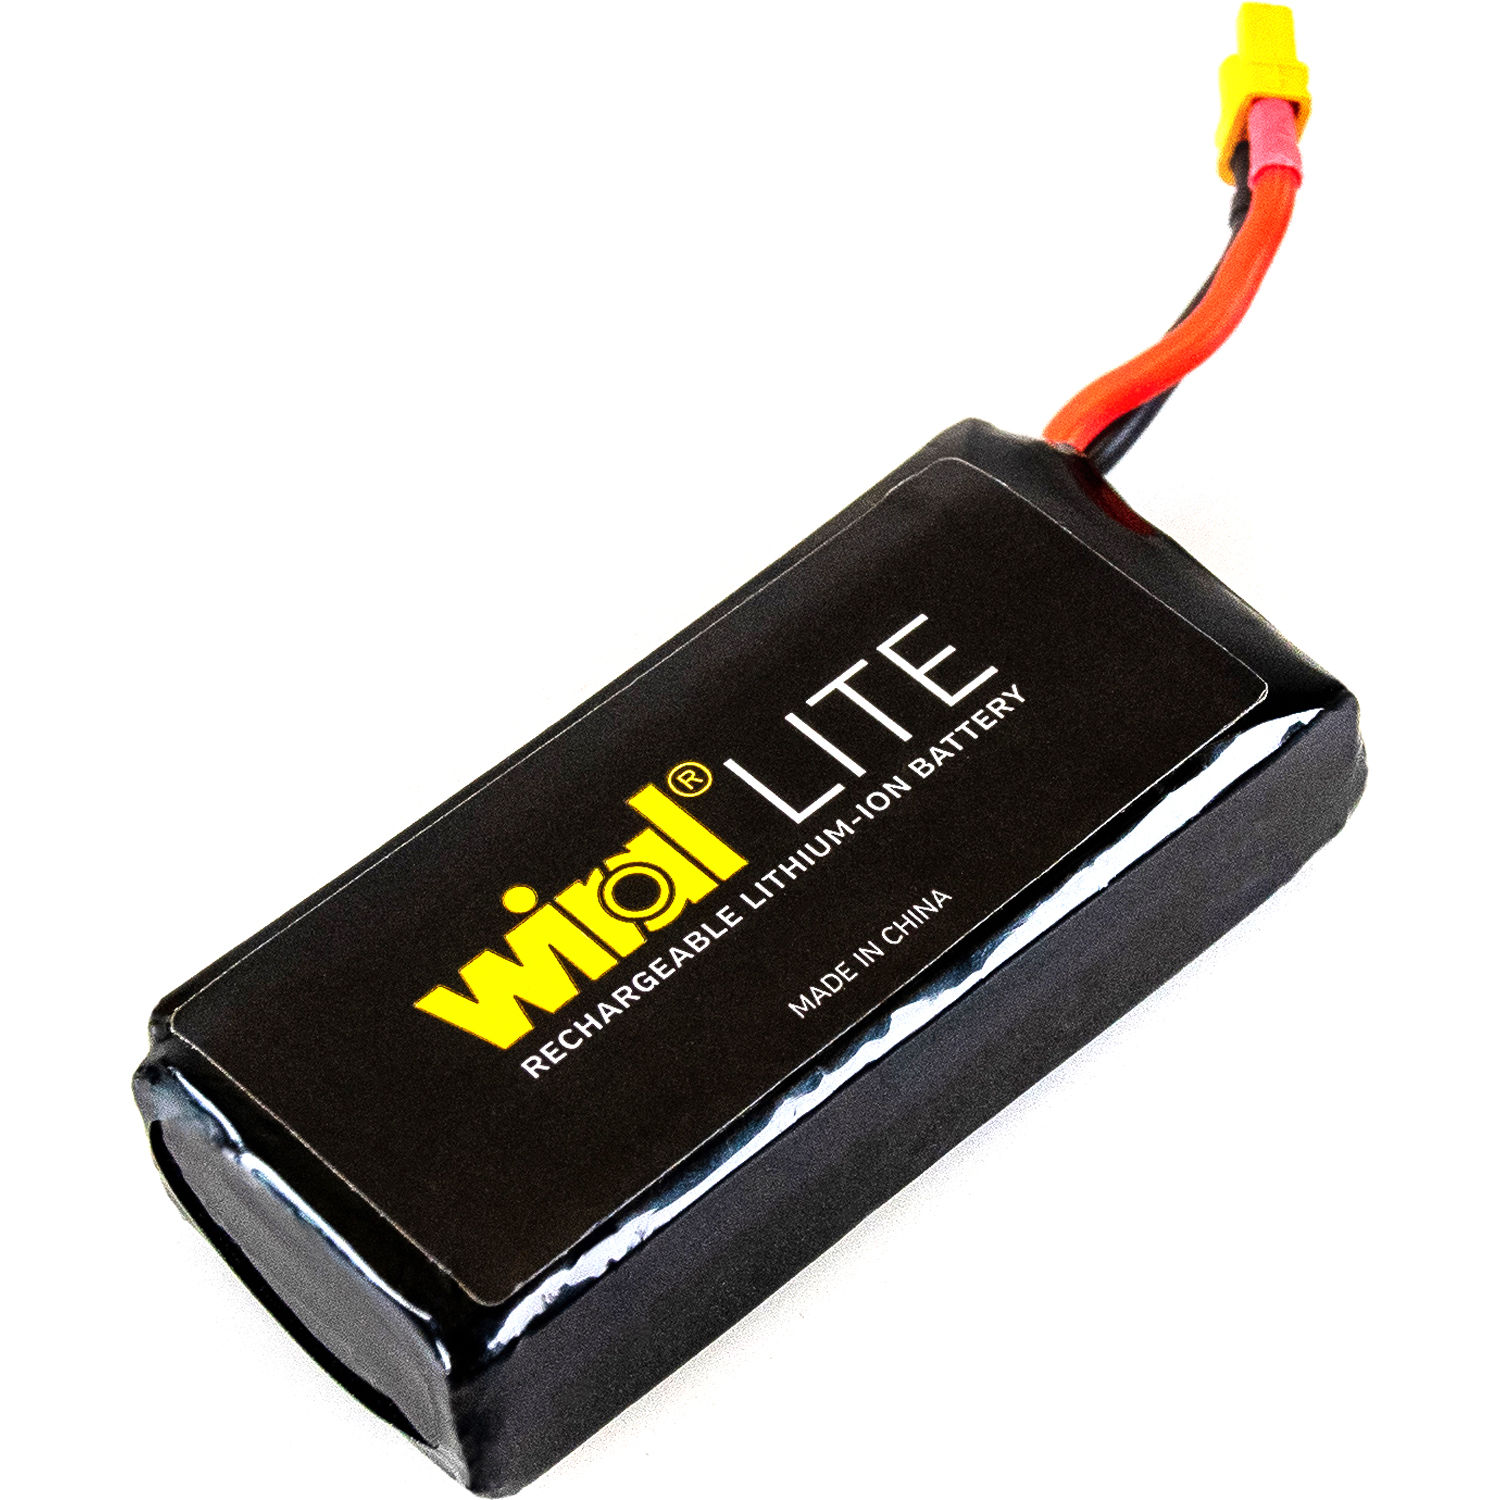 Wiral 12.6V LiPo Battery for LITE Cable Cam